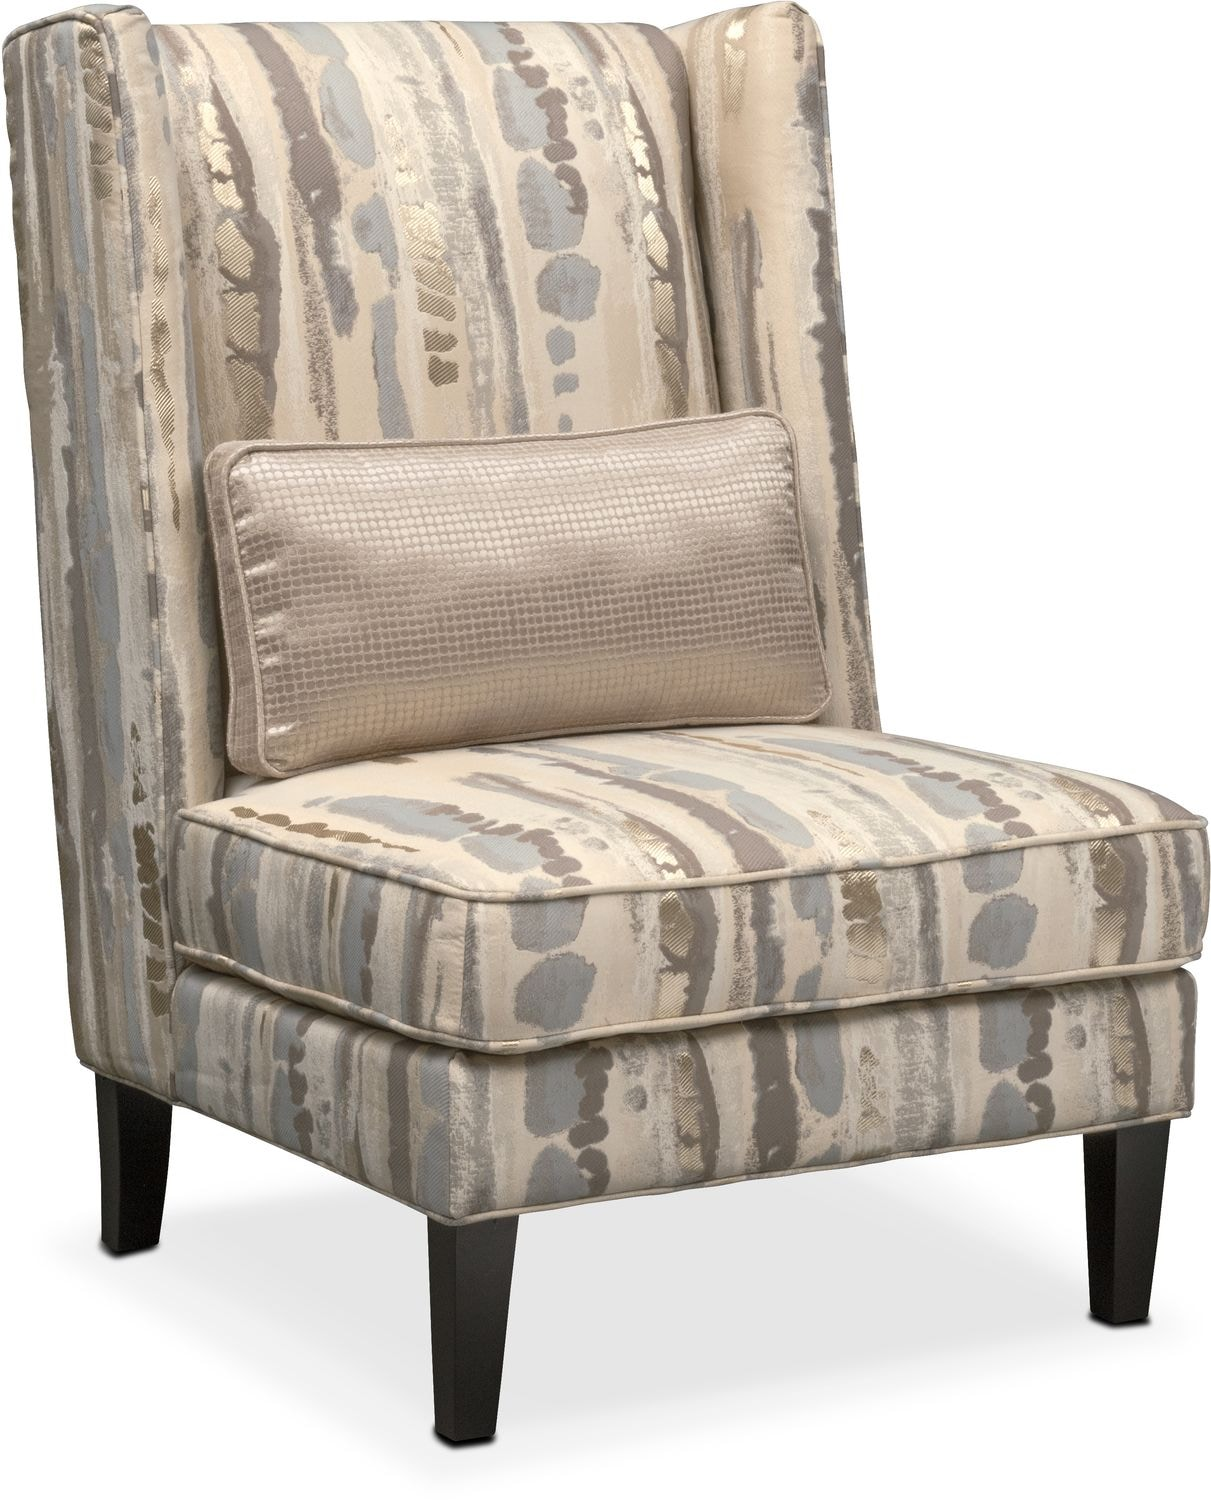 Accent Furniture For Living Room: Limelight Accent Chair- Platinum